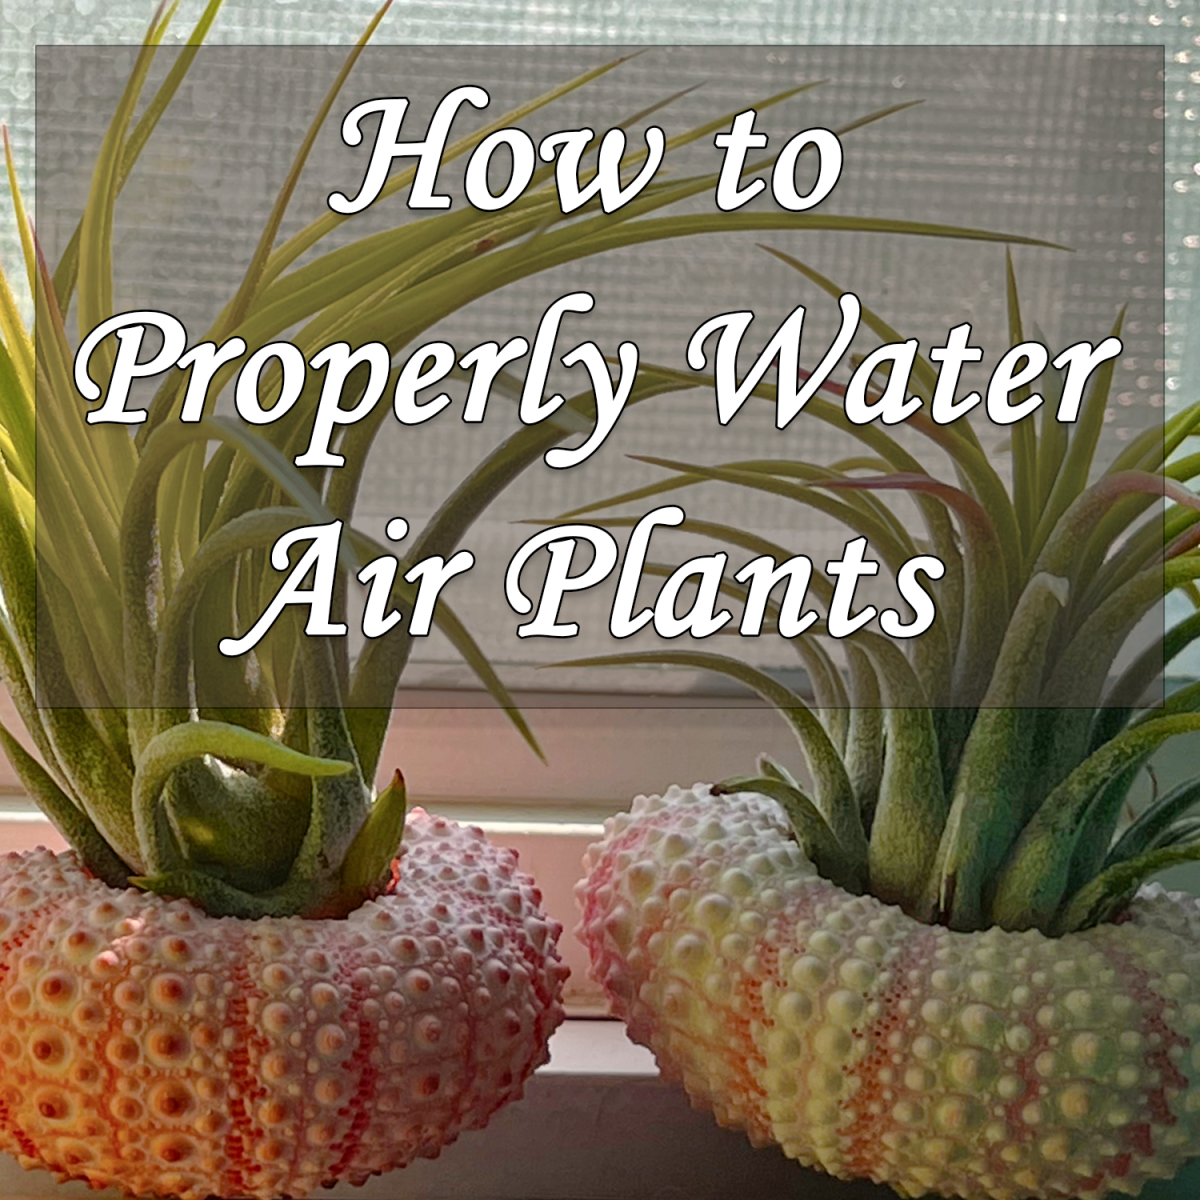 How to Properly Water Air Plants